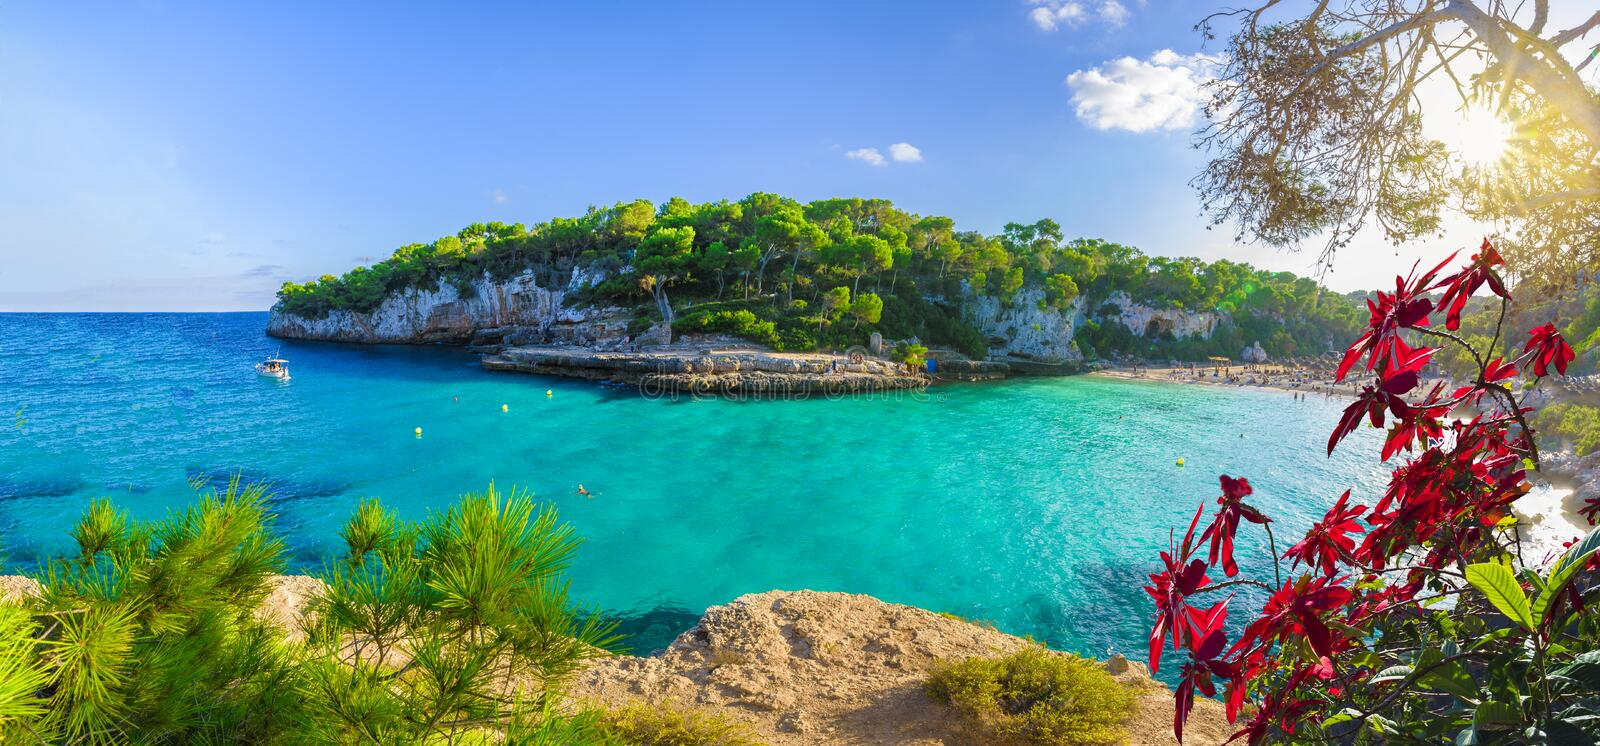 View of Cala Llombards, Mallorca Island, Spain. View of amazing Cala Llombards on Mallorca Island, Spain stock image